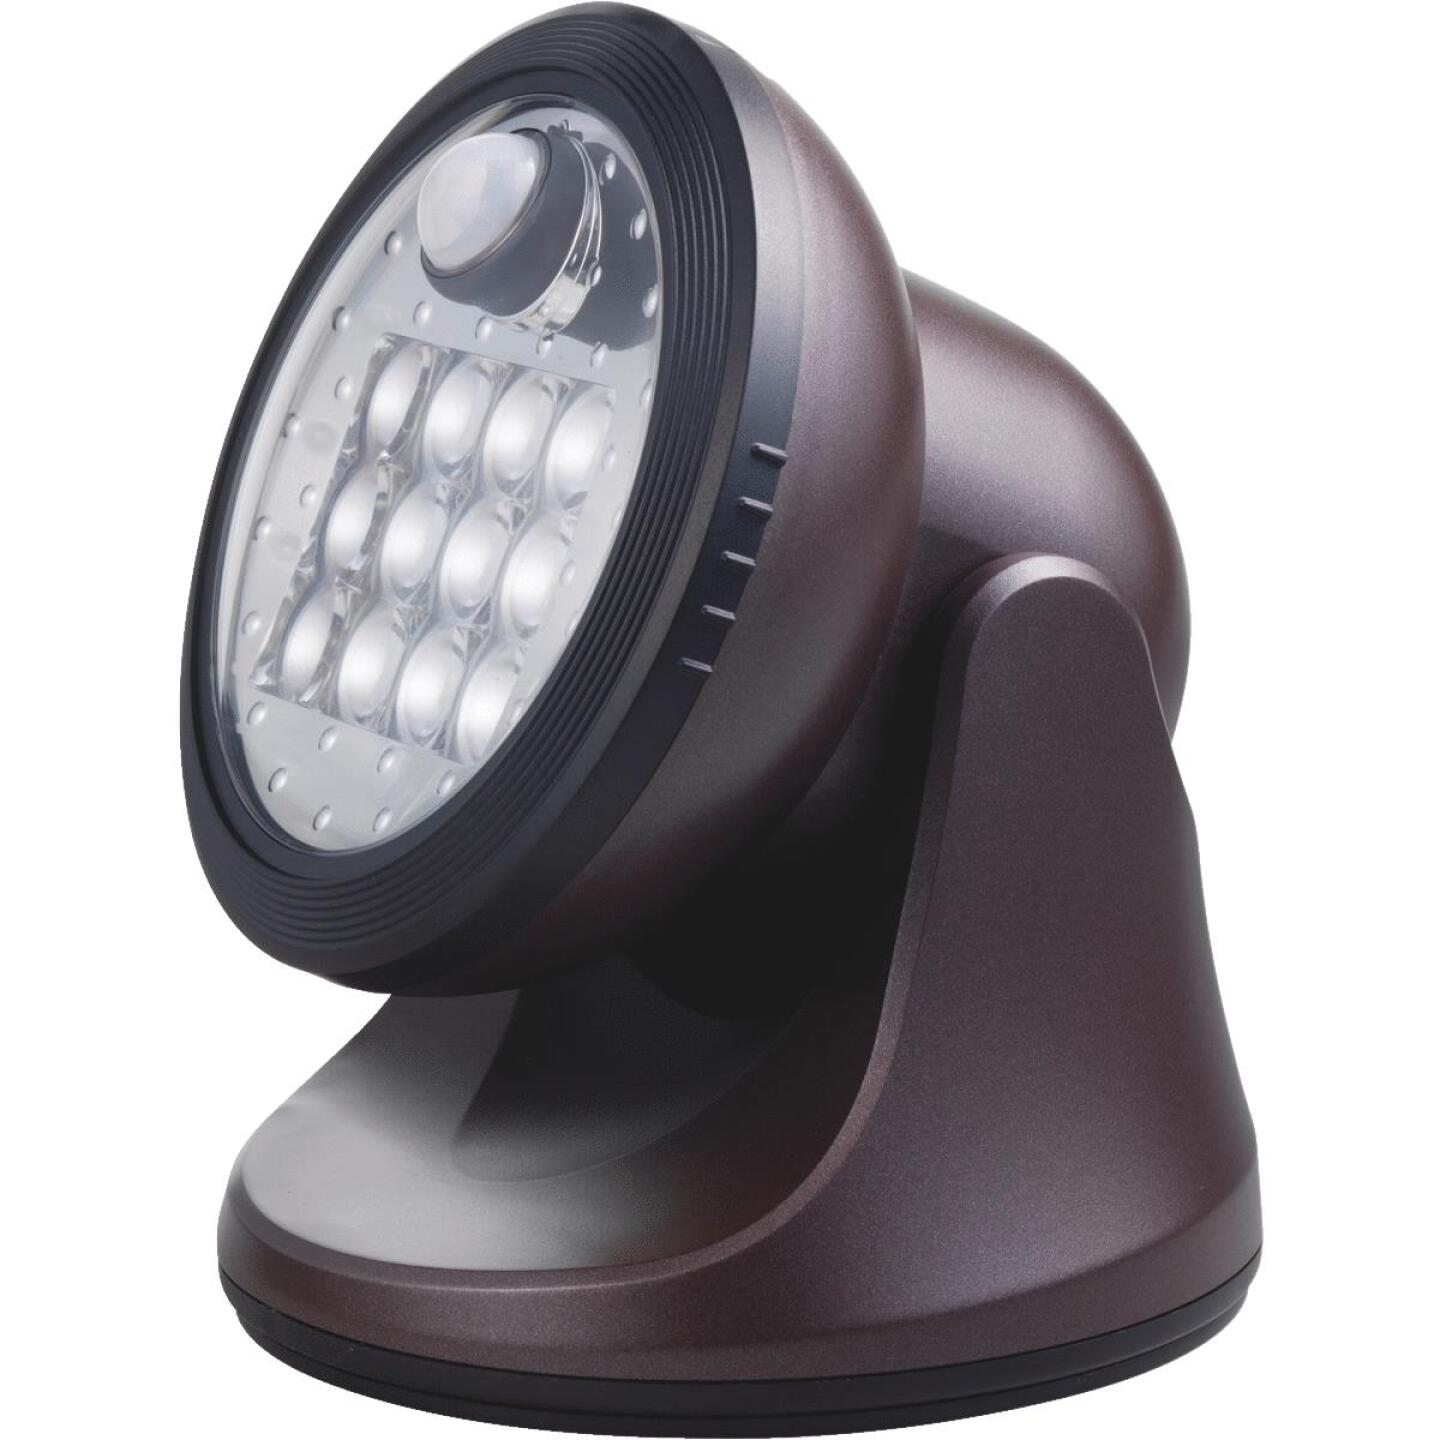 Light It Bronze 275 Lm. LED Battery Operated Security Light Fixture Image 1